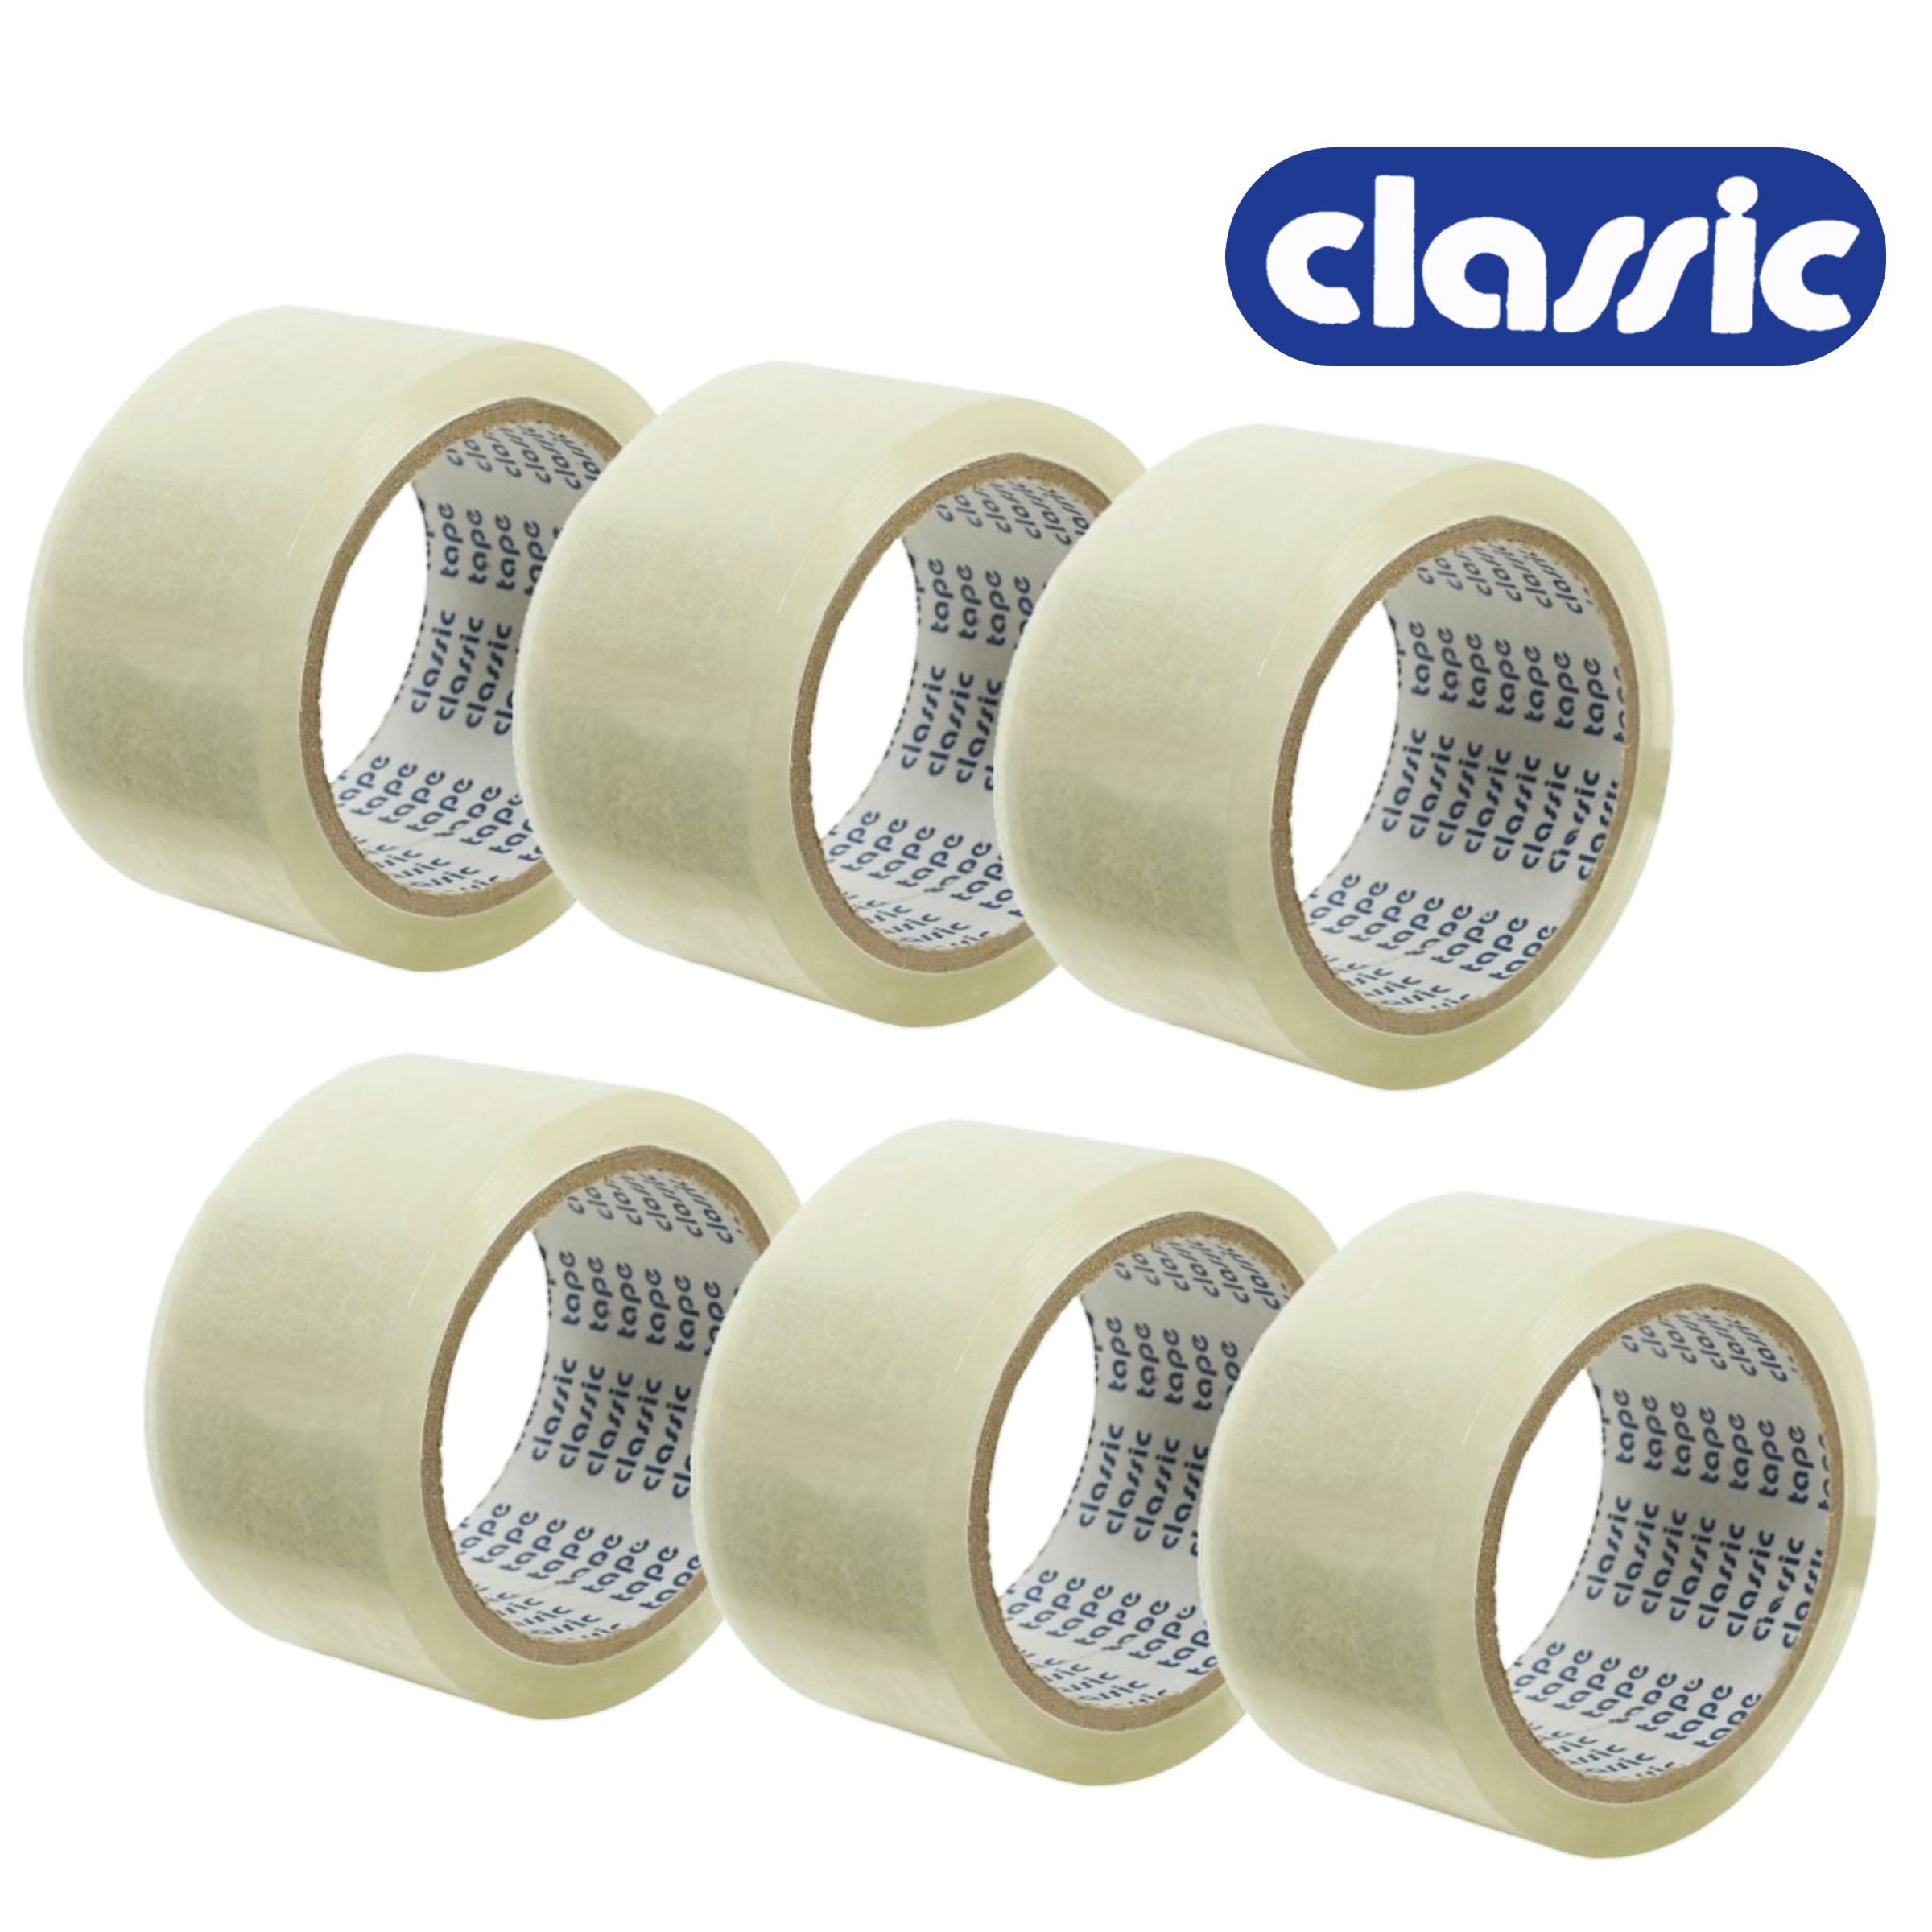 Classic 30 Micron 48 mm/2 Inch Transparent Self Adhesive Tape, Premium Quality, 1 Pack of 6 Roll